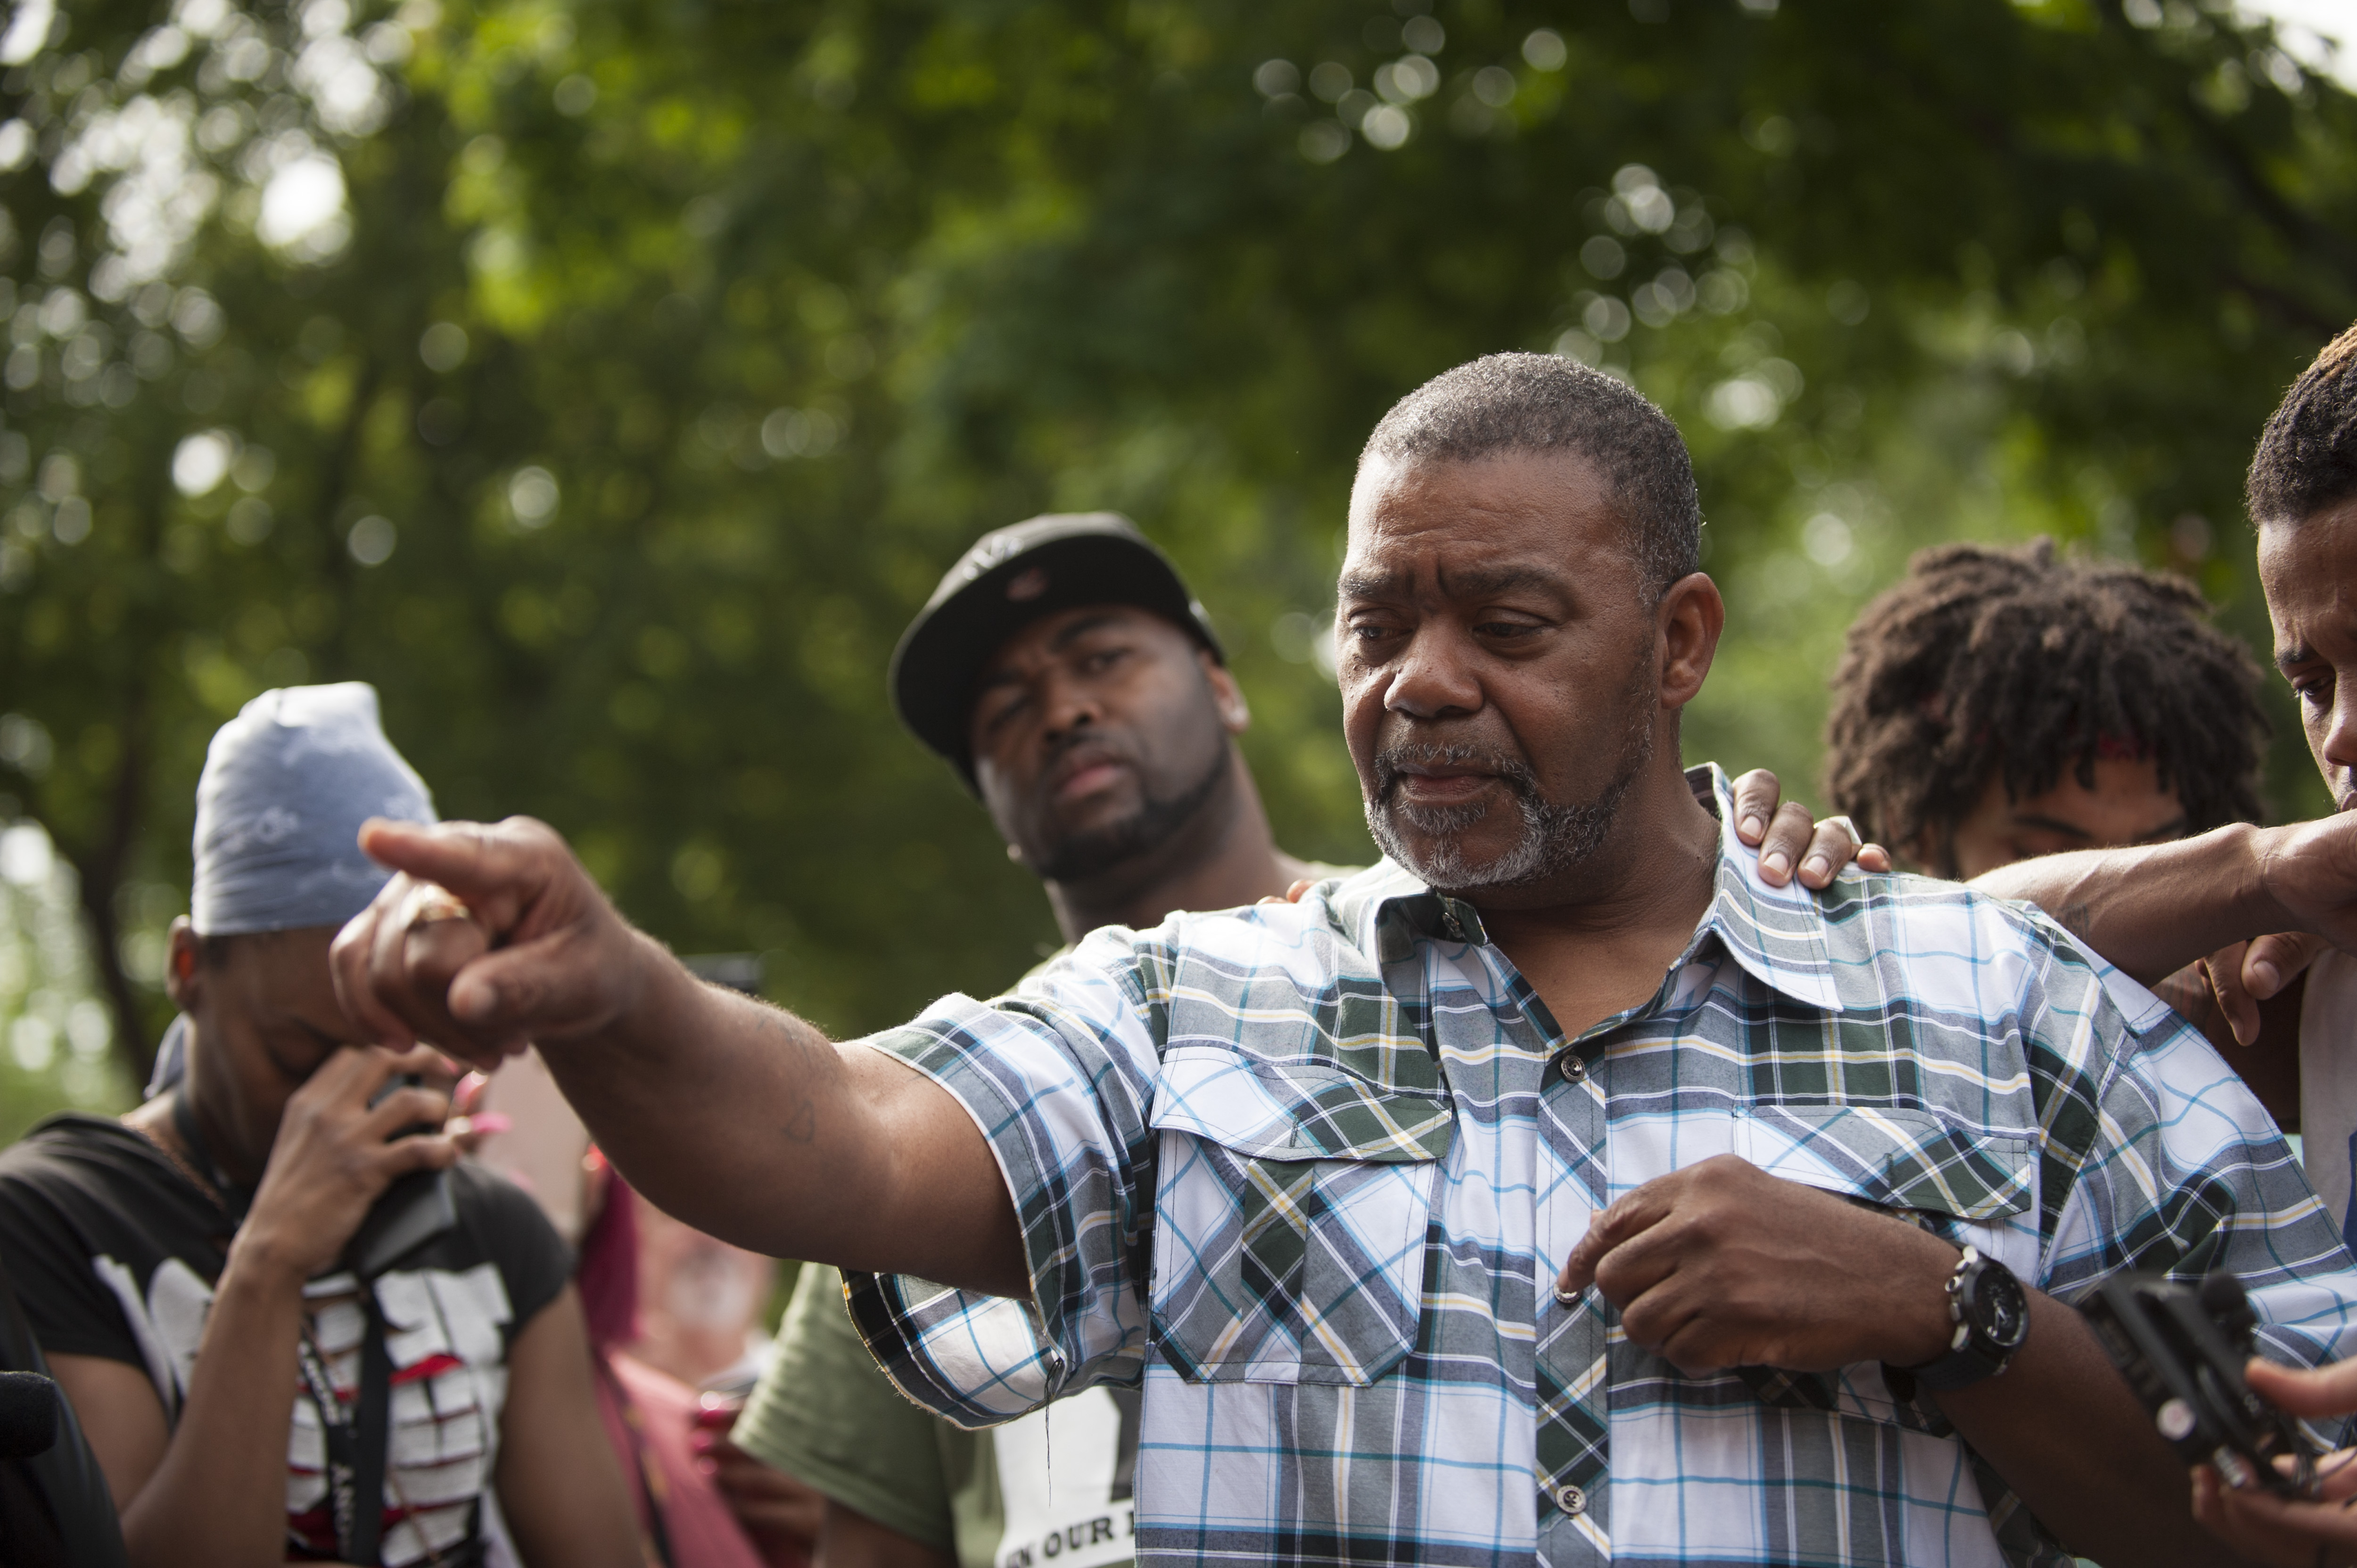 Clarence D. Castile, uncle of Philando Castile, speaks outside the Governor's Mansion on July 7, 2016 in St. Paul, Minnesota.